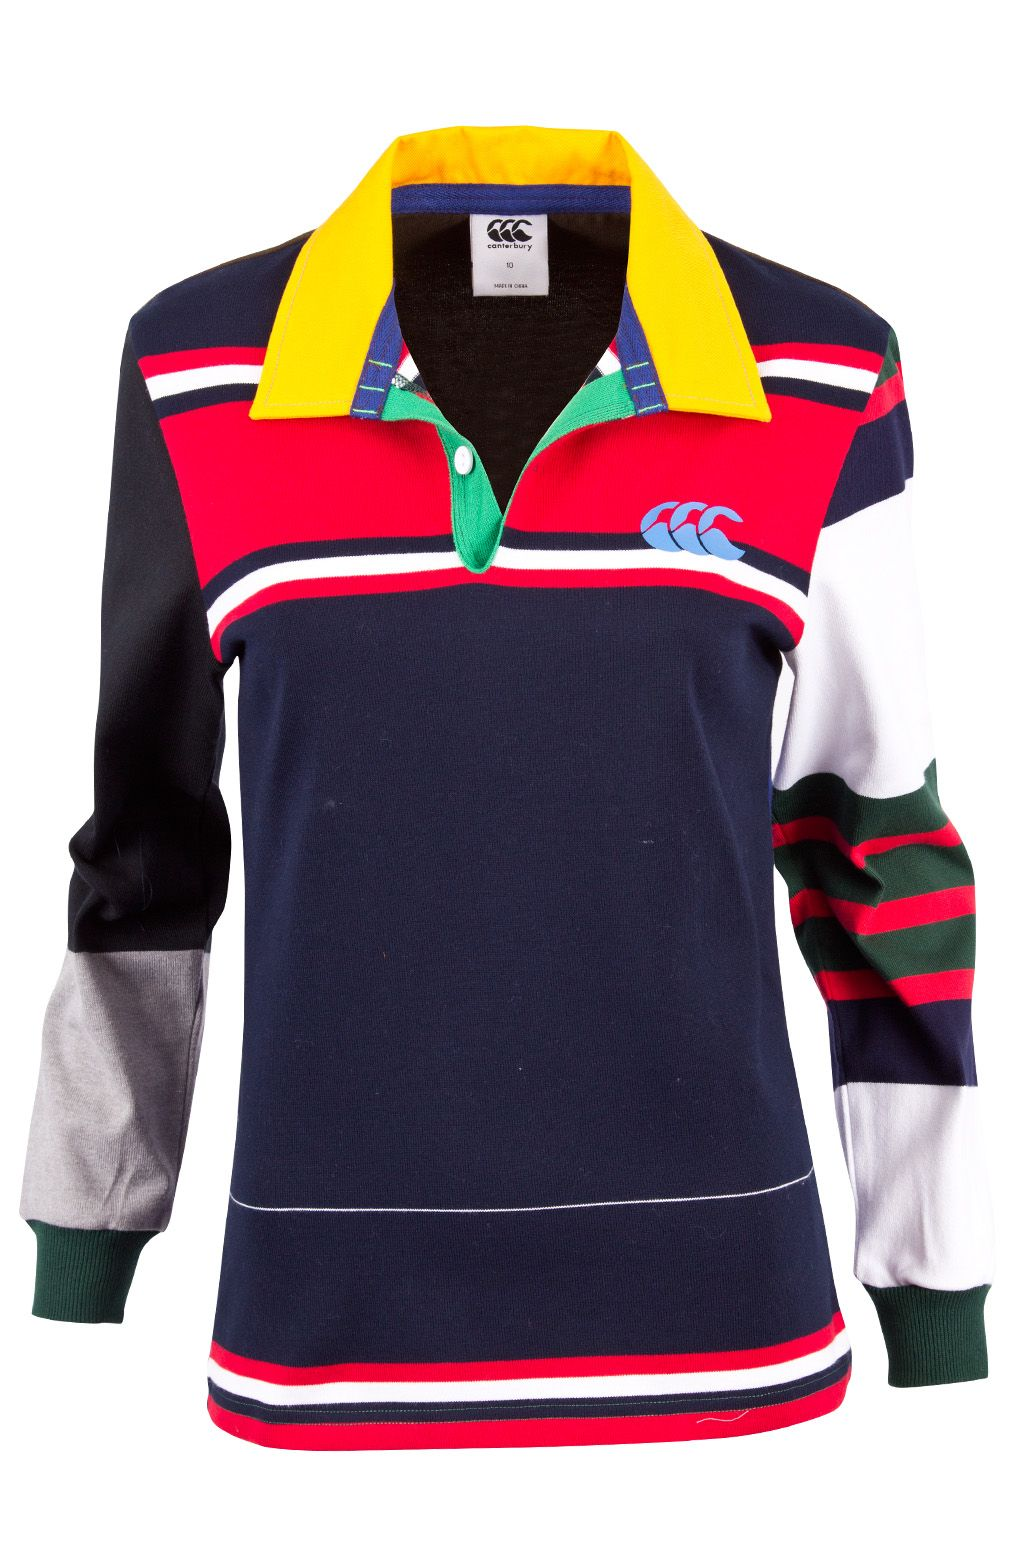 bb135349999 Genuine Canterbury clothing on sale at Canterbury Australia. Rugby jerseys,  sportswear, casual wear and more.